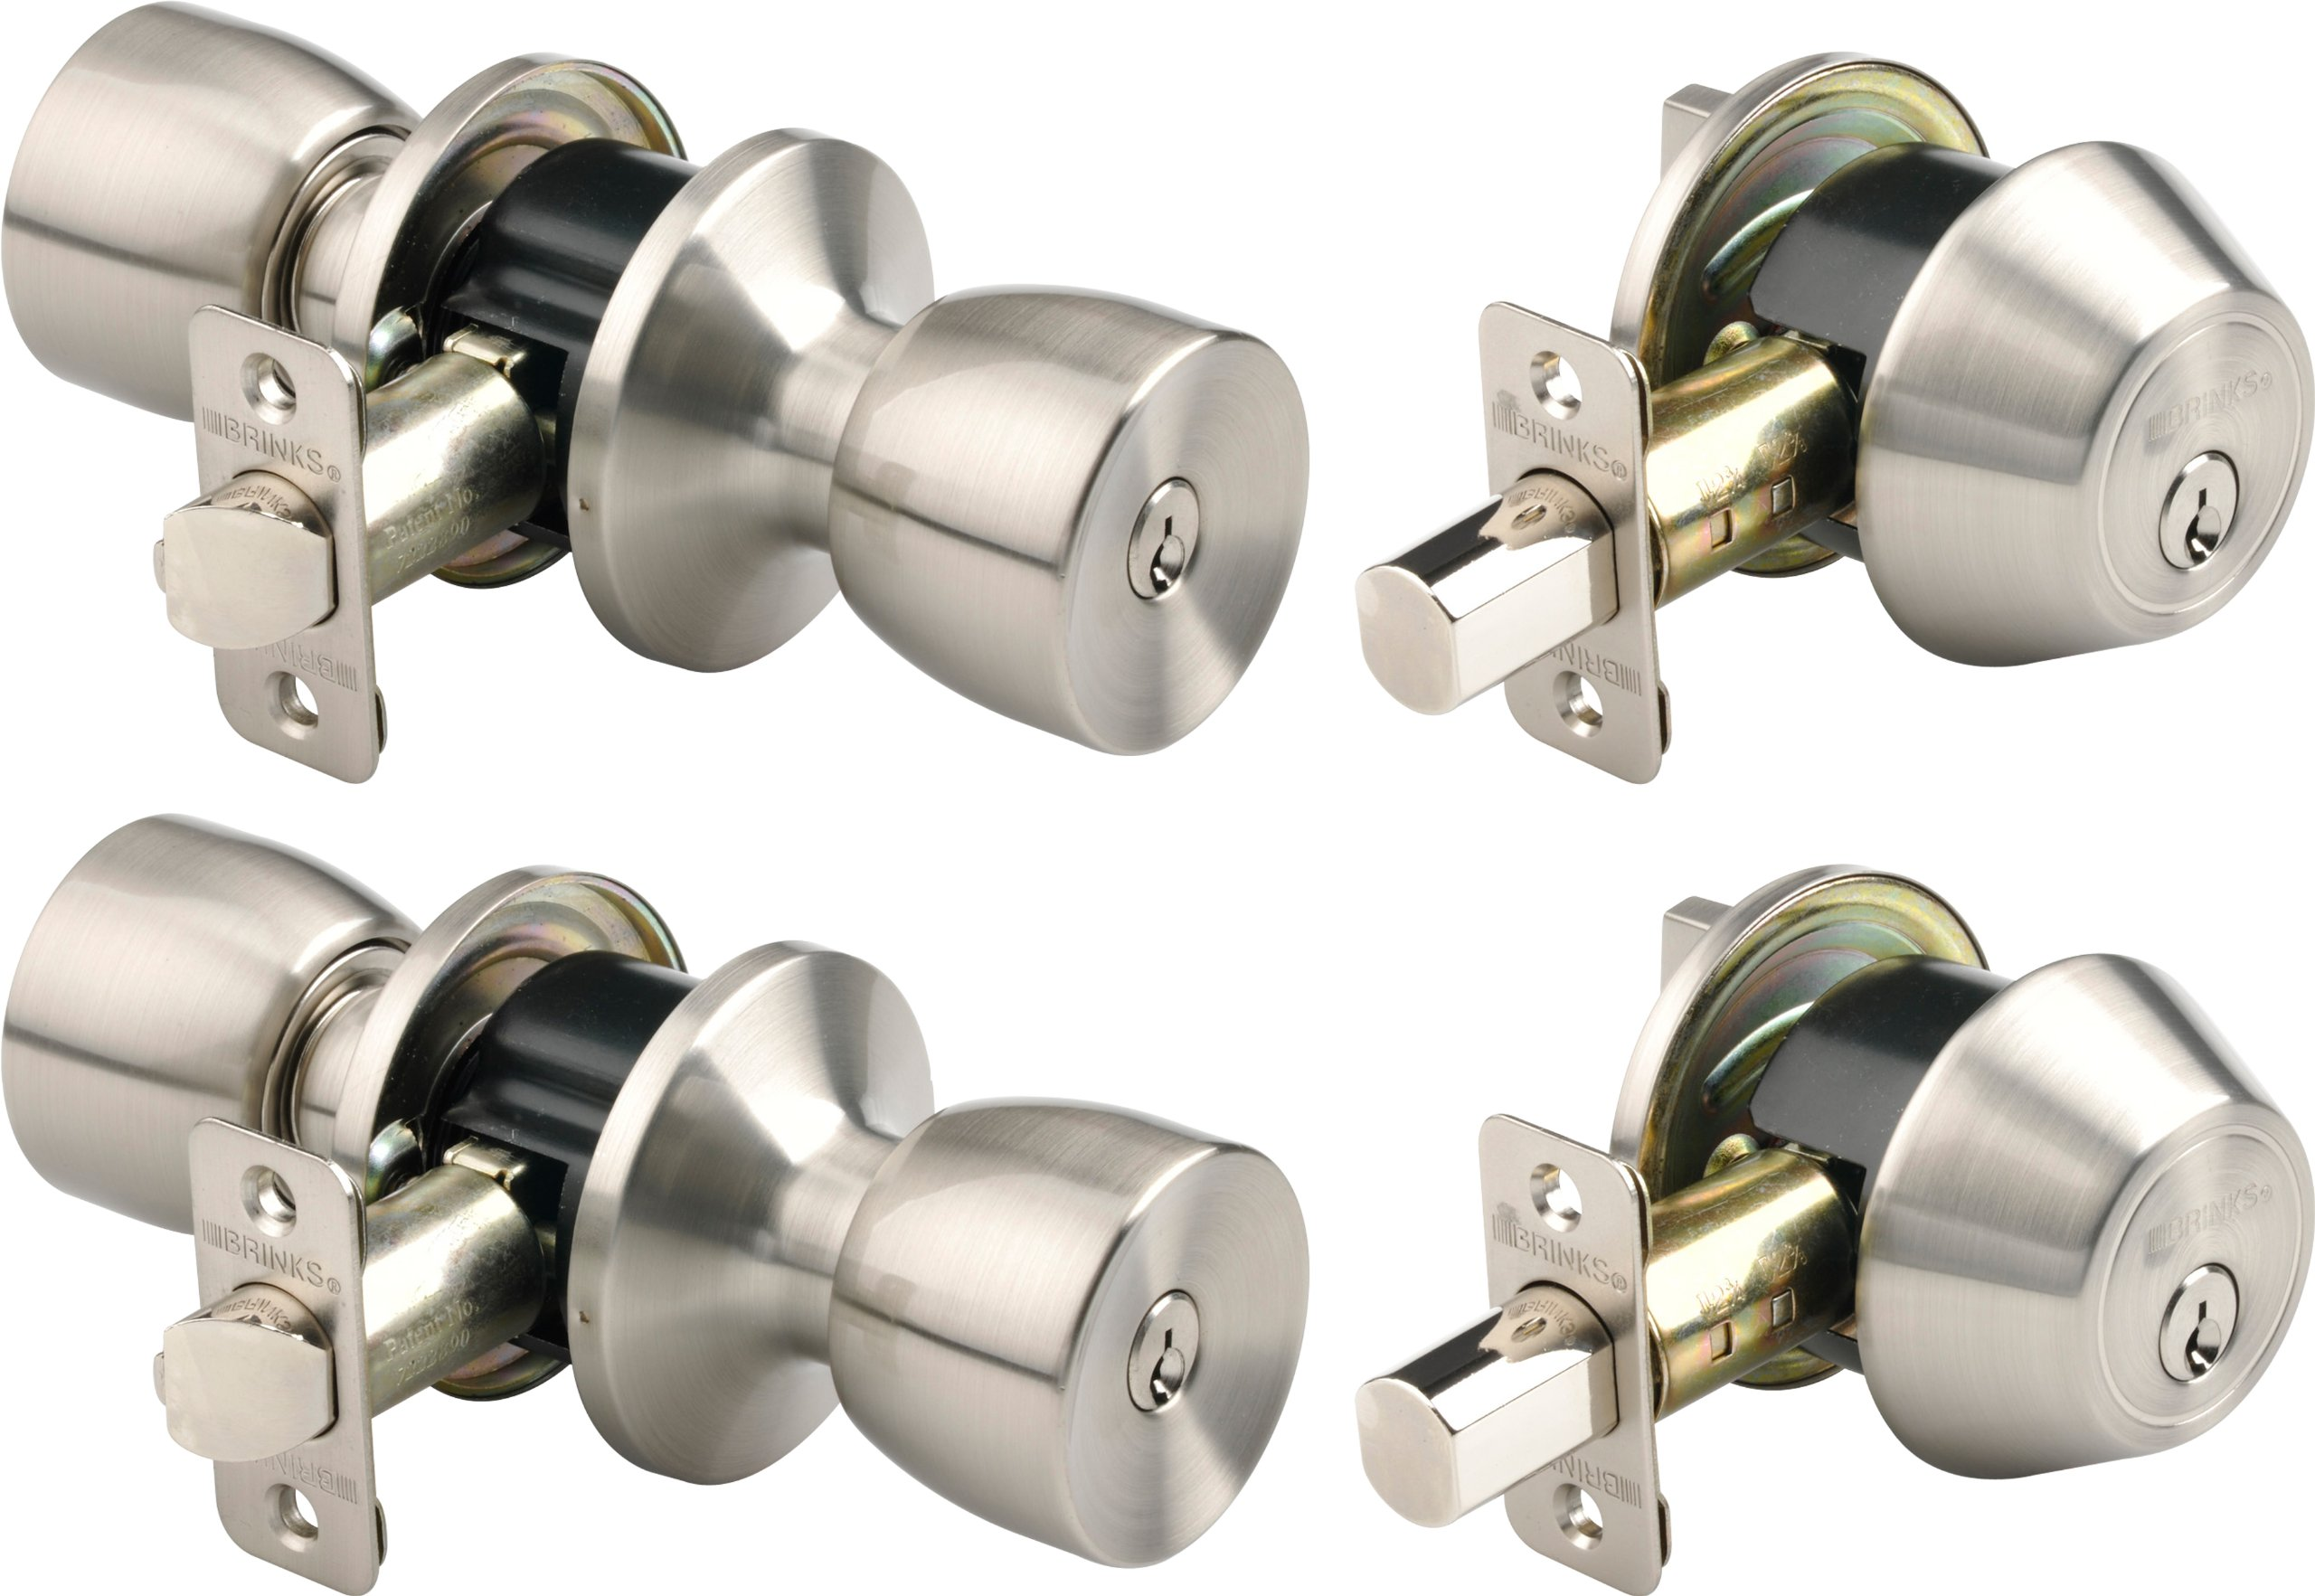 Brinks 2798-119 Bell Style Keyed Alike Door Knob and Deadbolt Set, Satin Nickel, 2-Pack